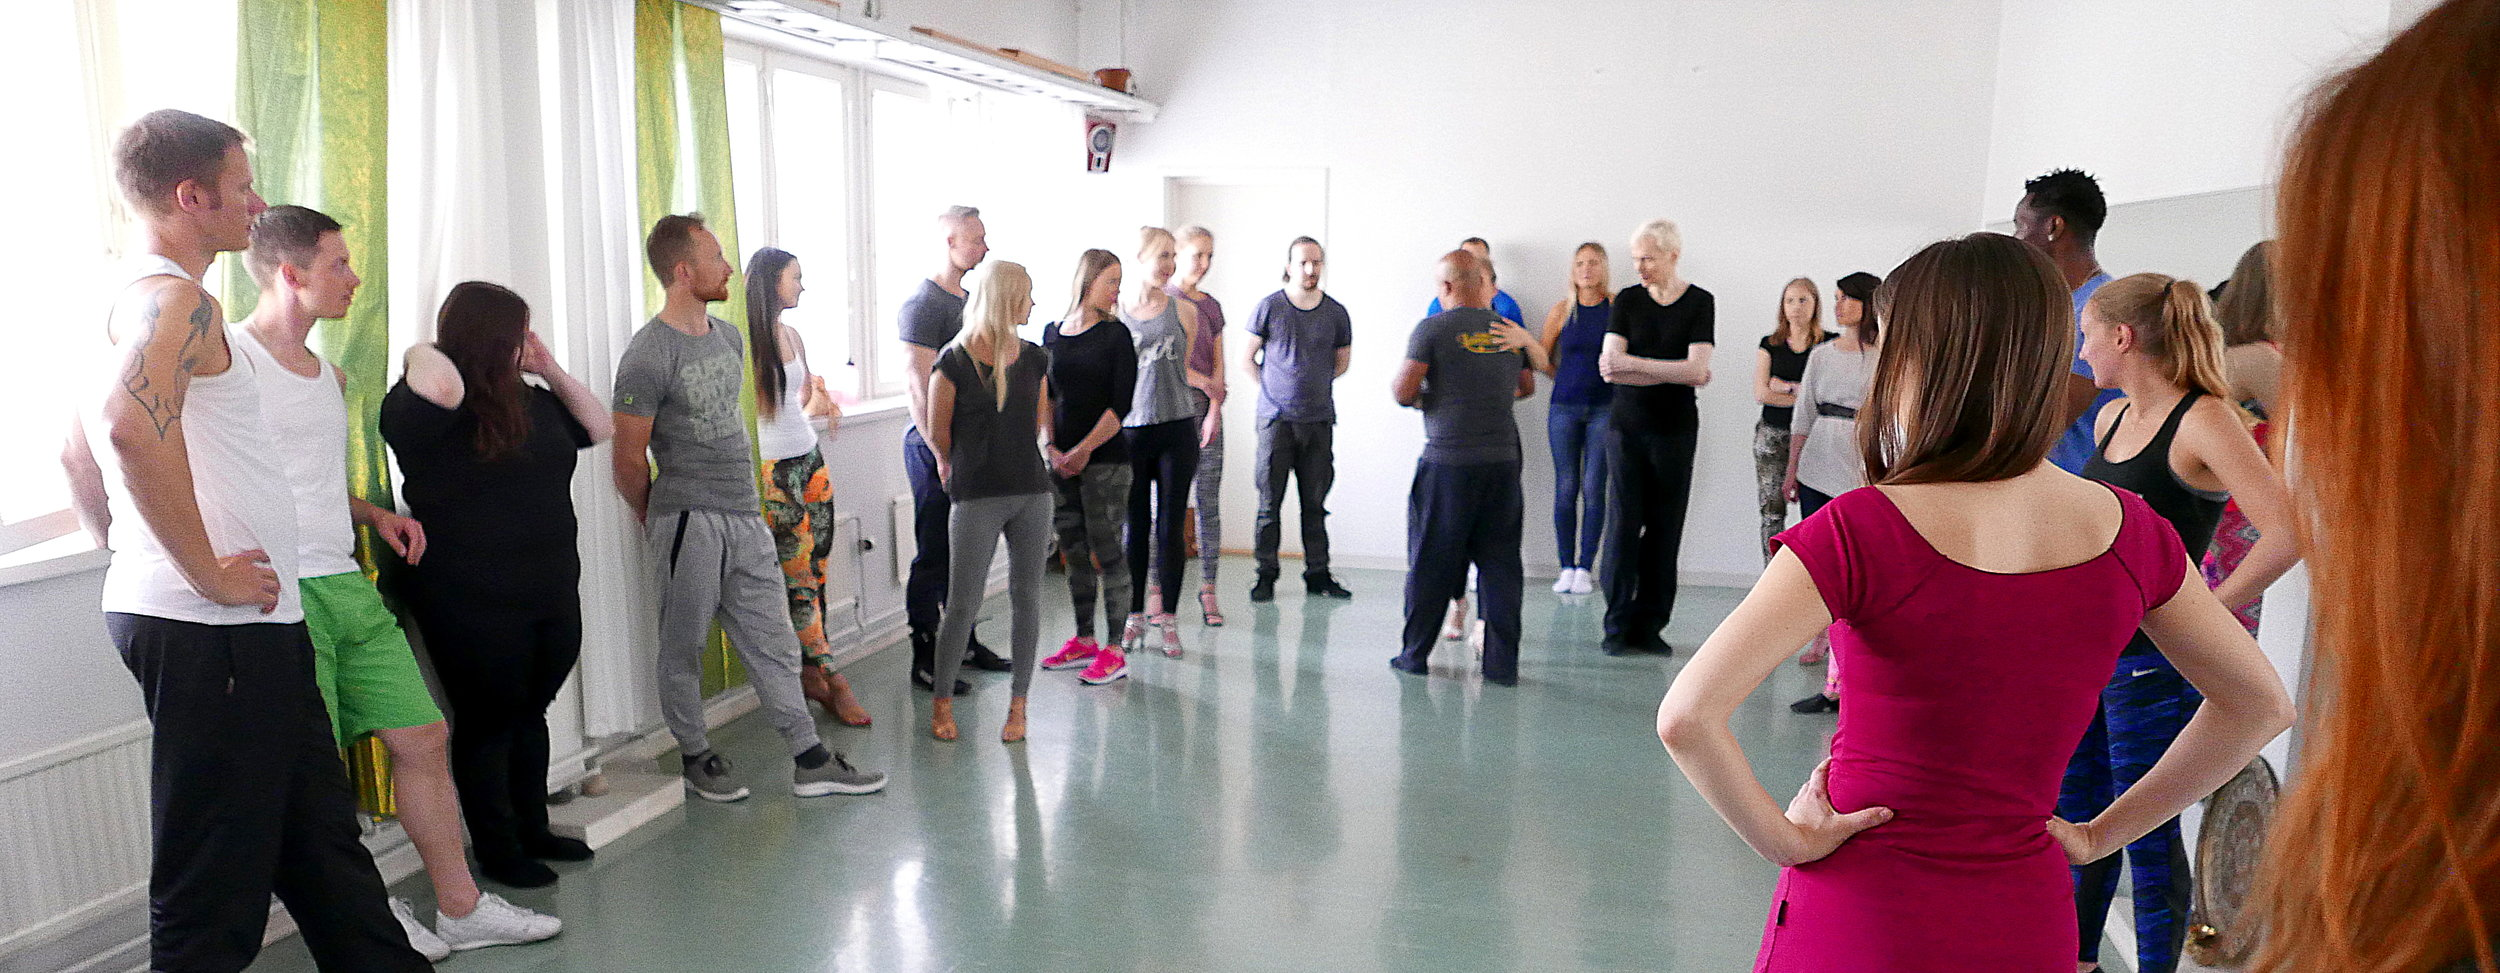 Our biggest class yet this June! This autumn we are focusing on classes & workshops with small groups :)